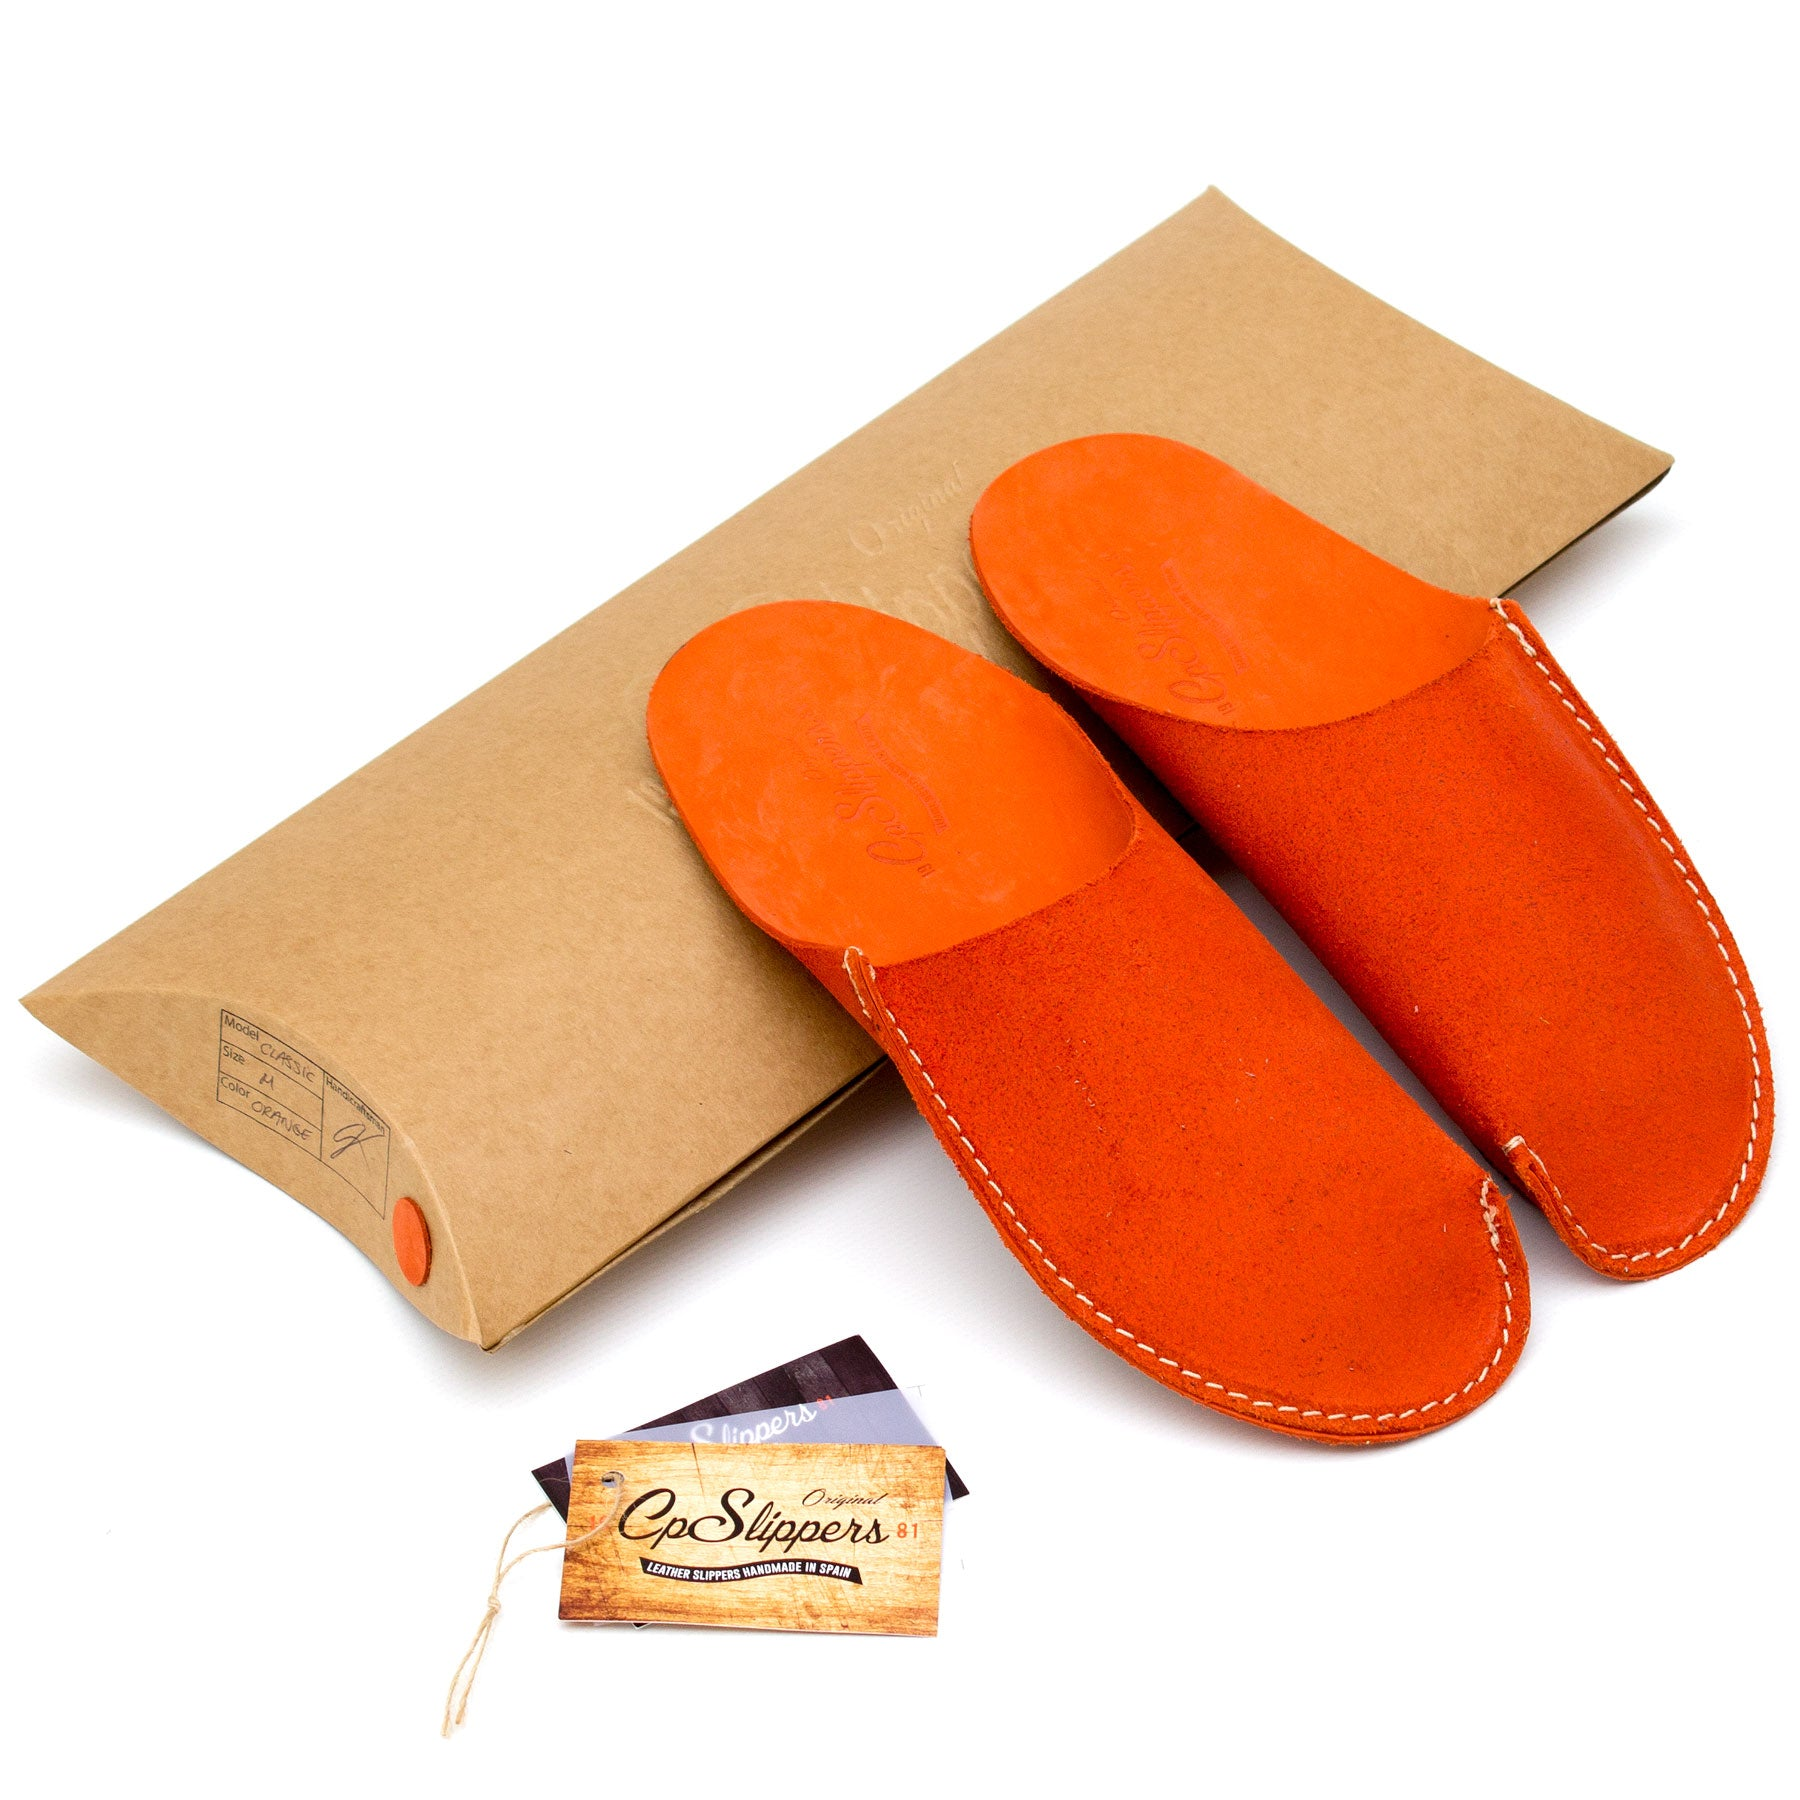 Orange CP Slippers minimalist collection home shoes